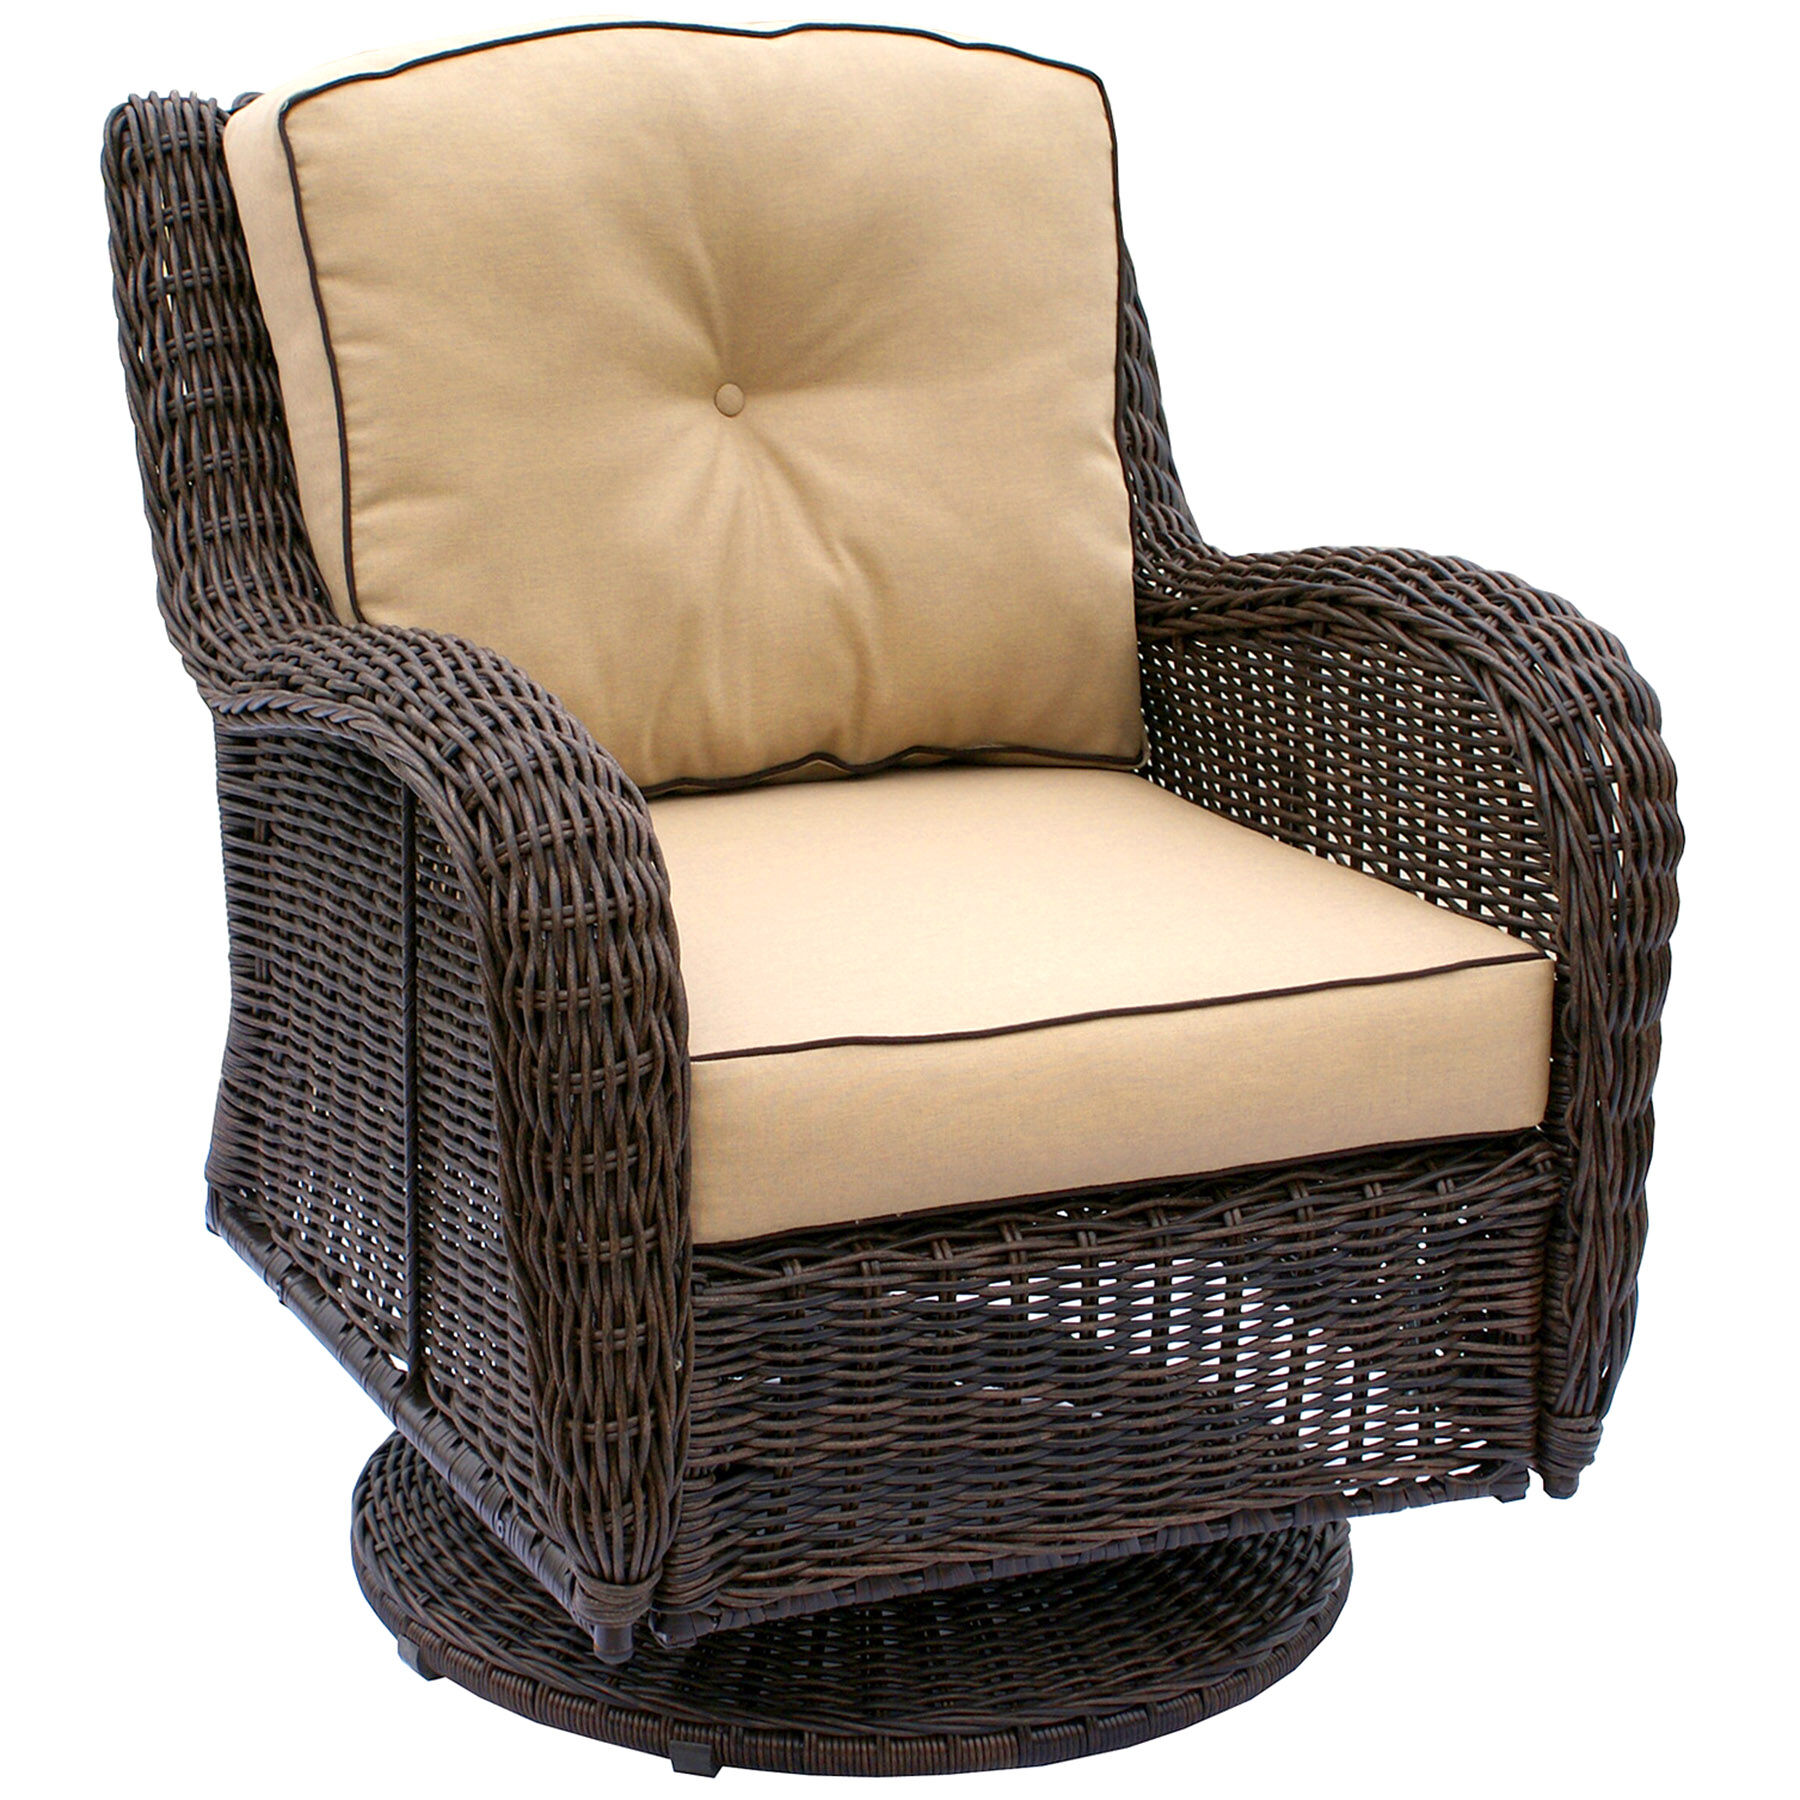 Patio Furniture   At Home Grand Isle Brown Wicker Swivel Chair